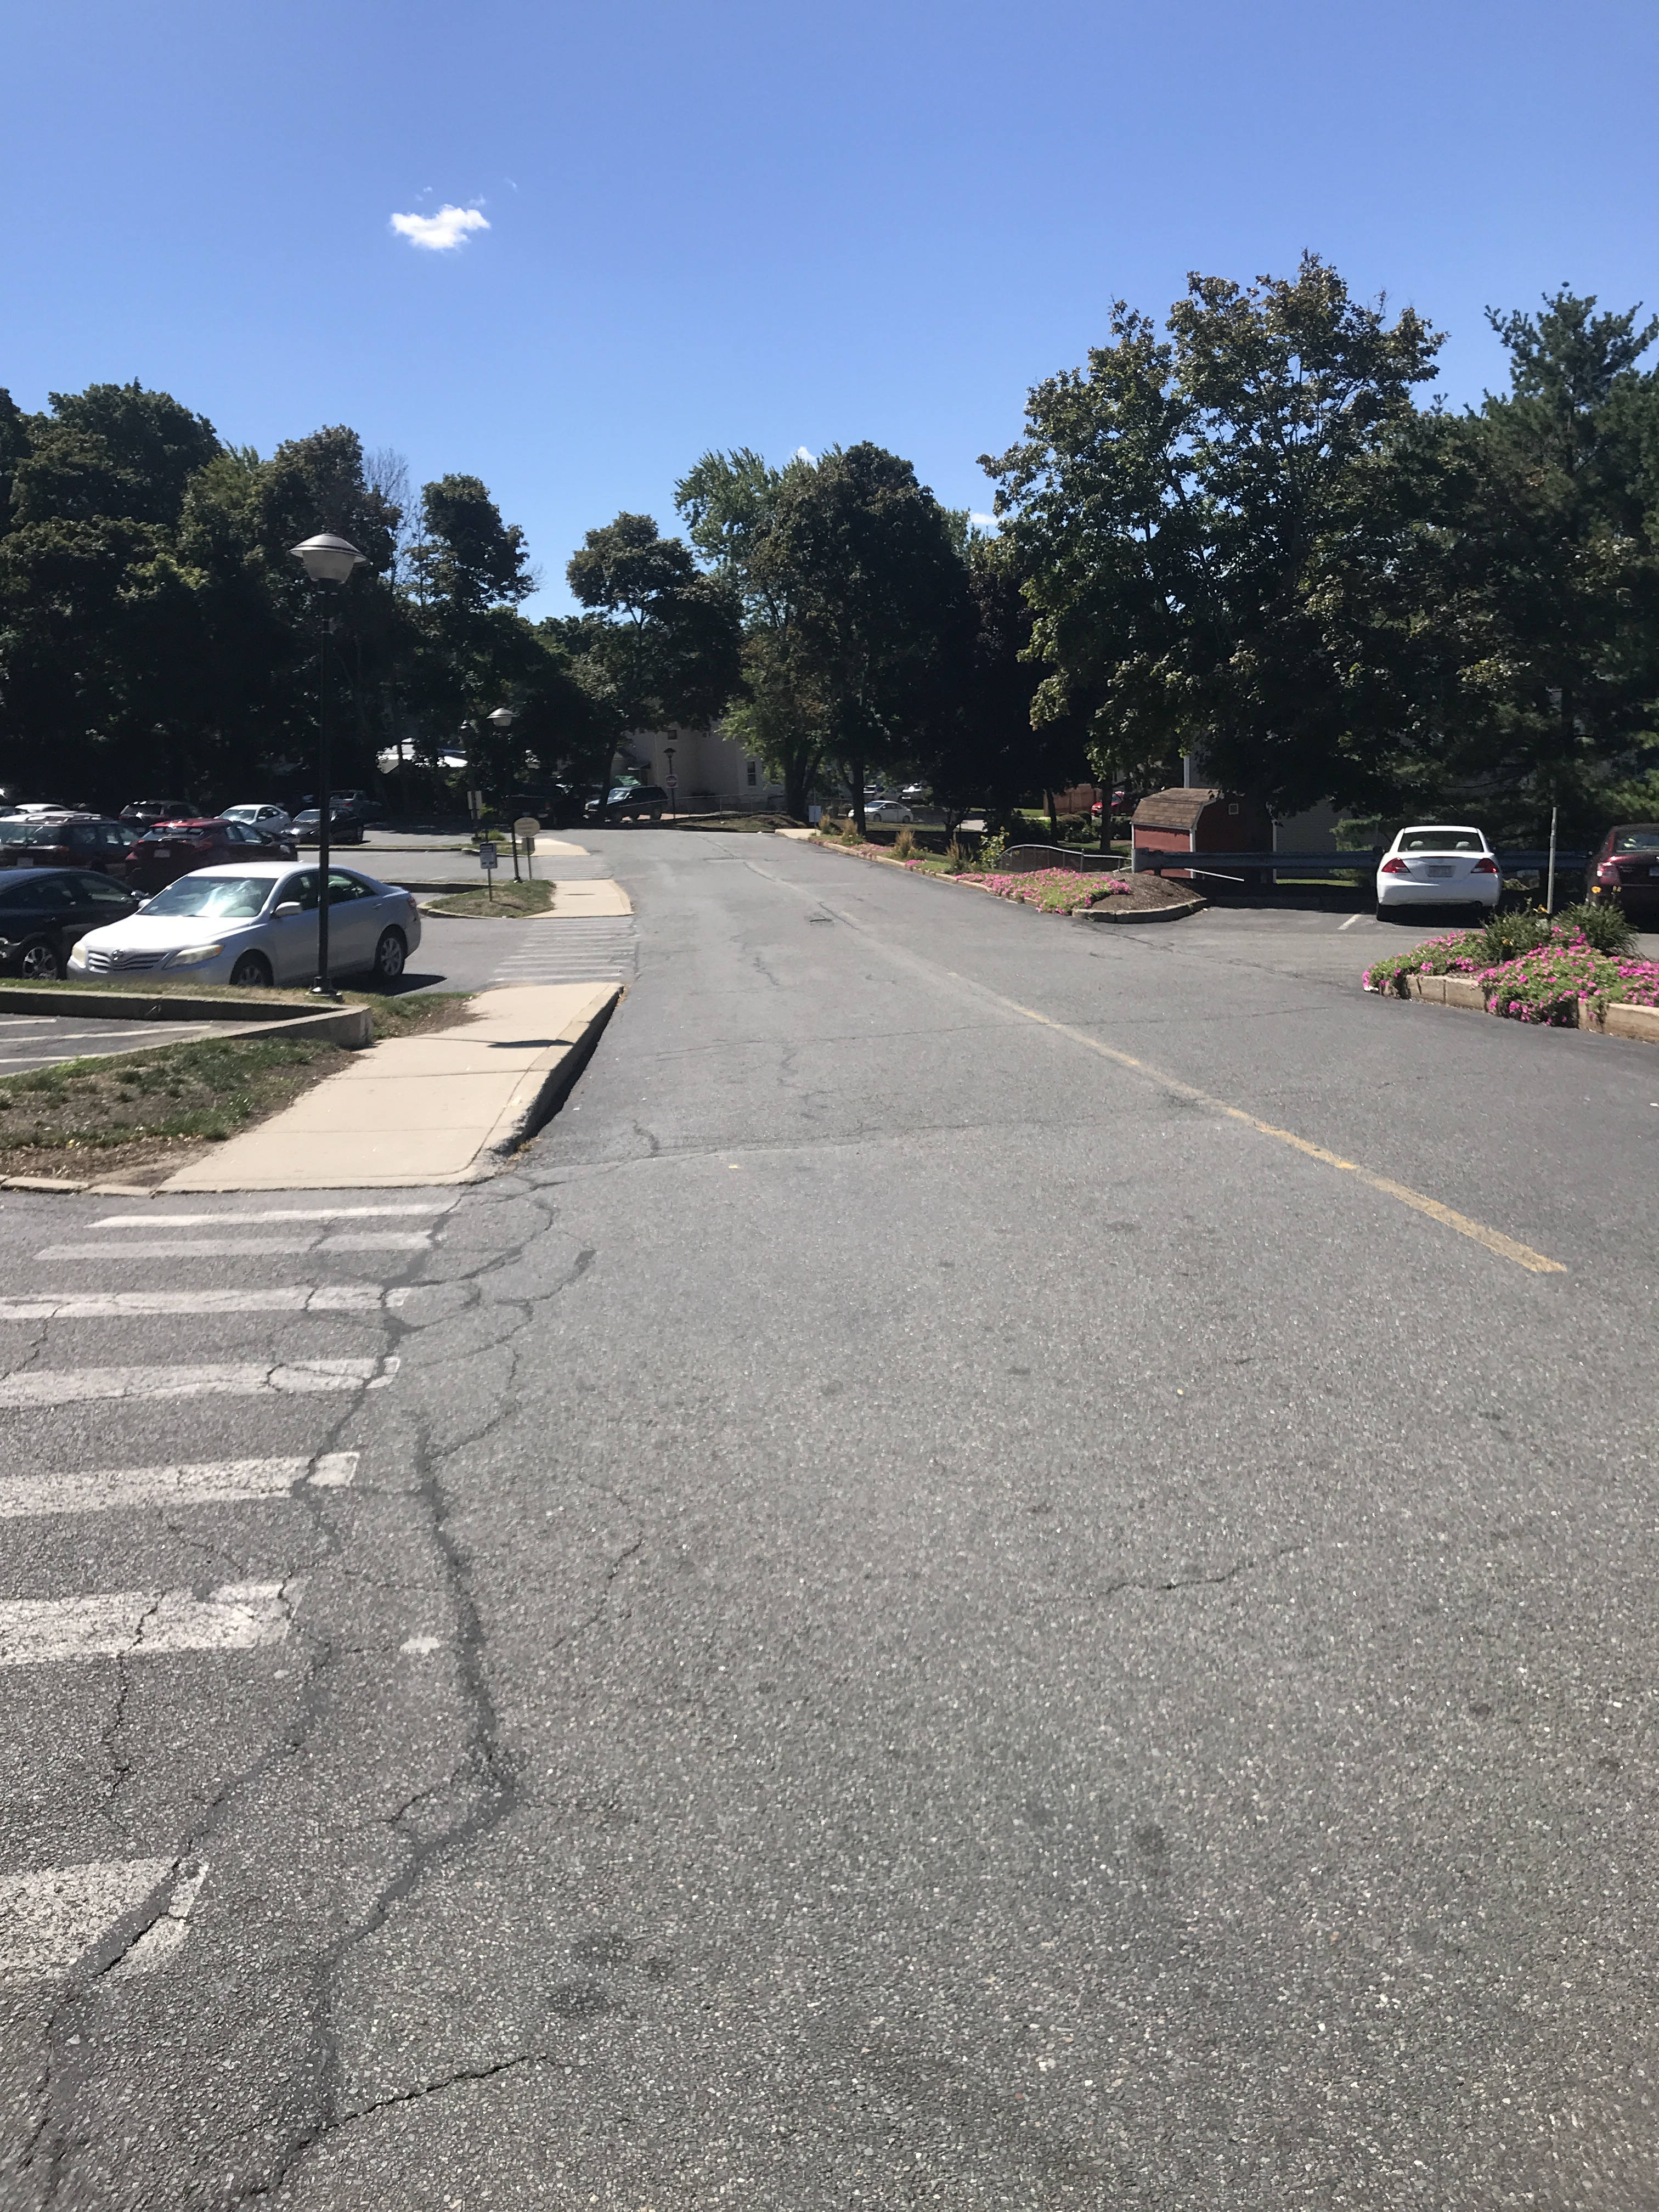 A view from the Salem Heights parking lot, showing the driveway